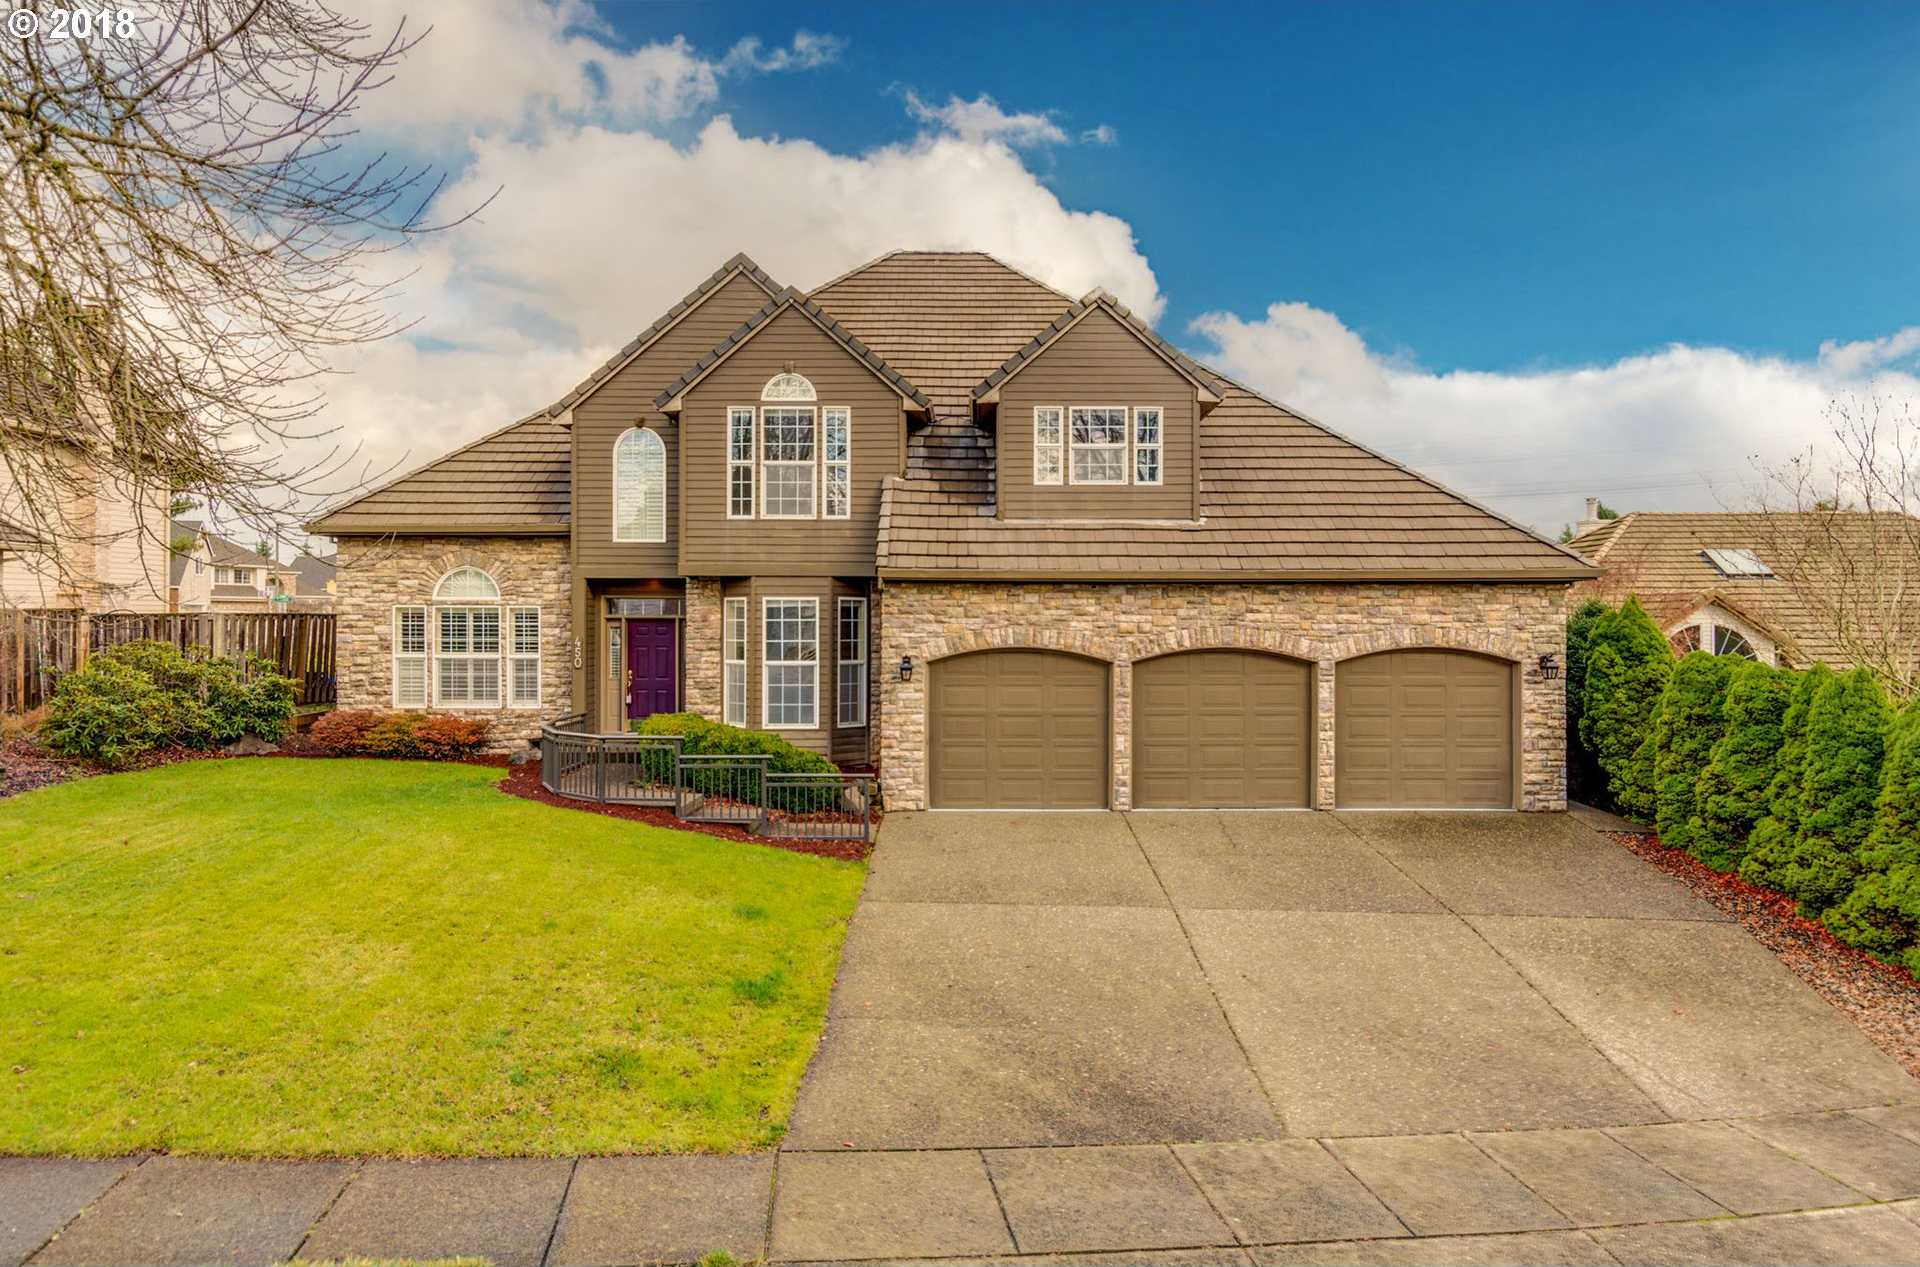 $725,100 - 4Br/3Ba -  for Sale in Five Oaks/triple Creek, Beaverton